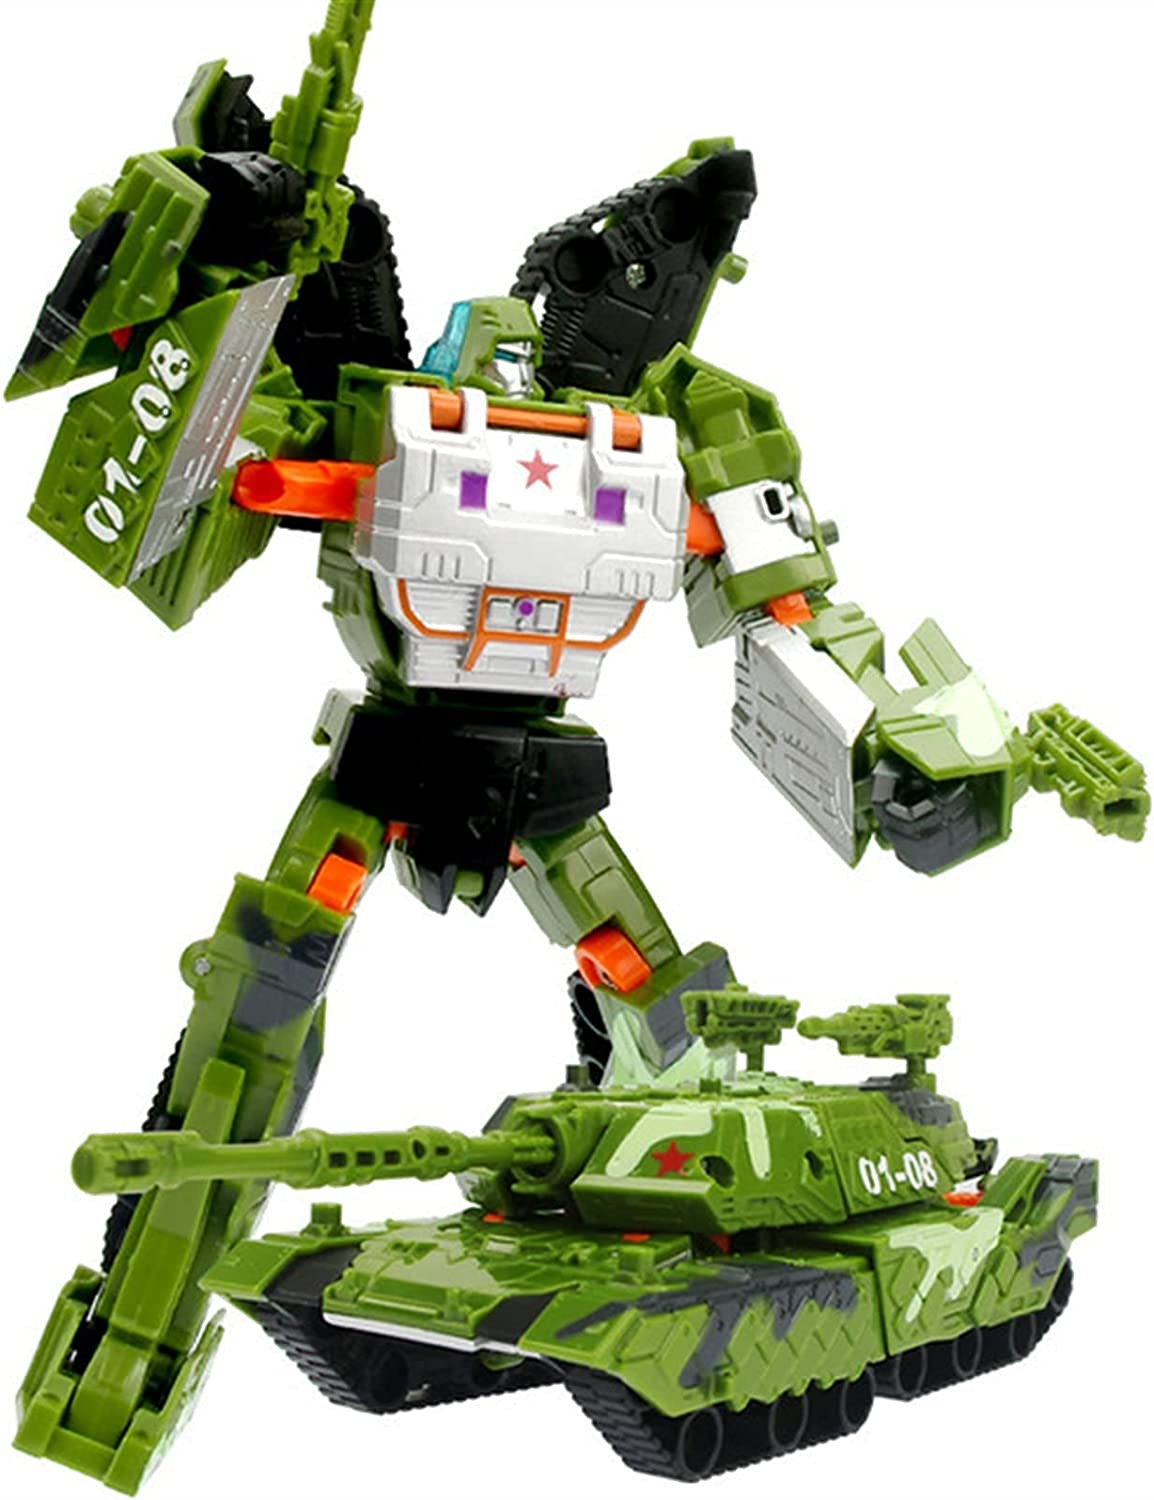 WDWD Chicago Tampa Mall Mall Transformer Toy Armada Green T Action Megatron Leader Class